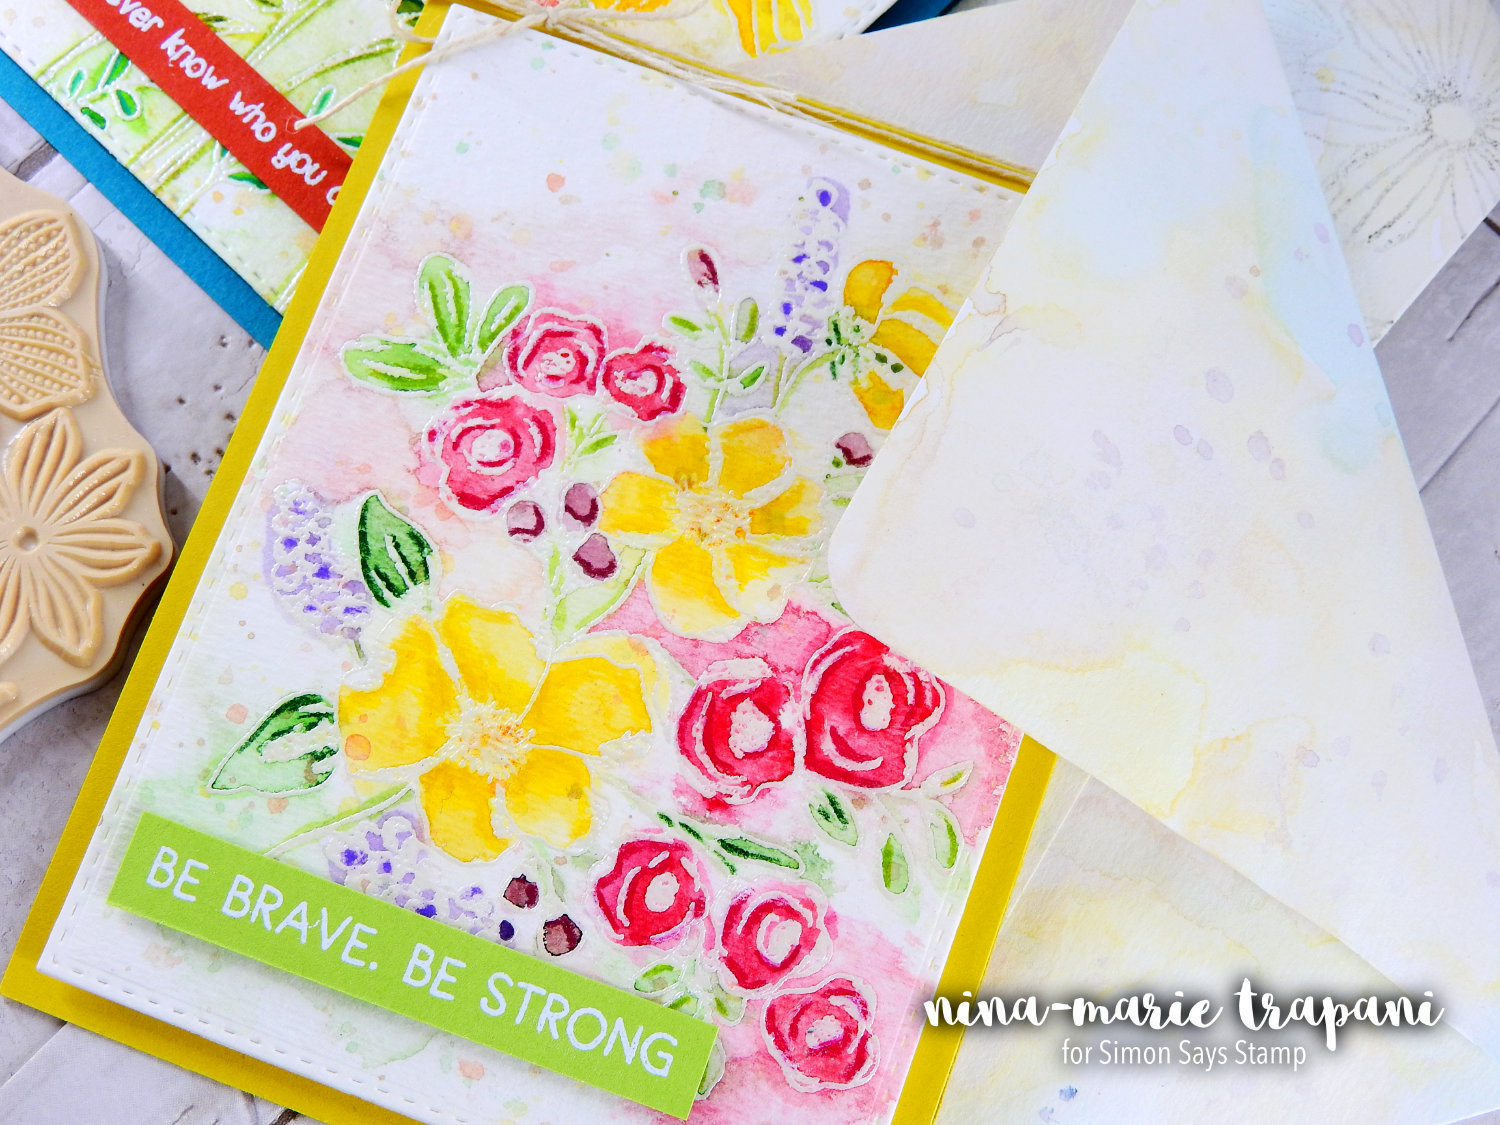 Watercolor Forals + Plant a Flower Day